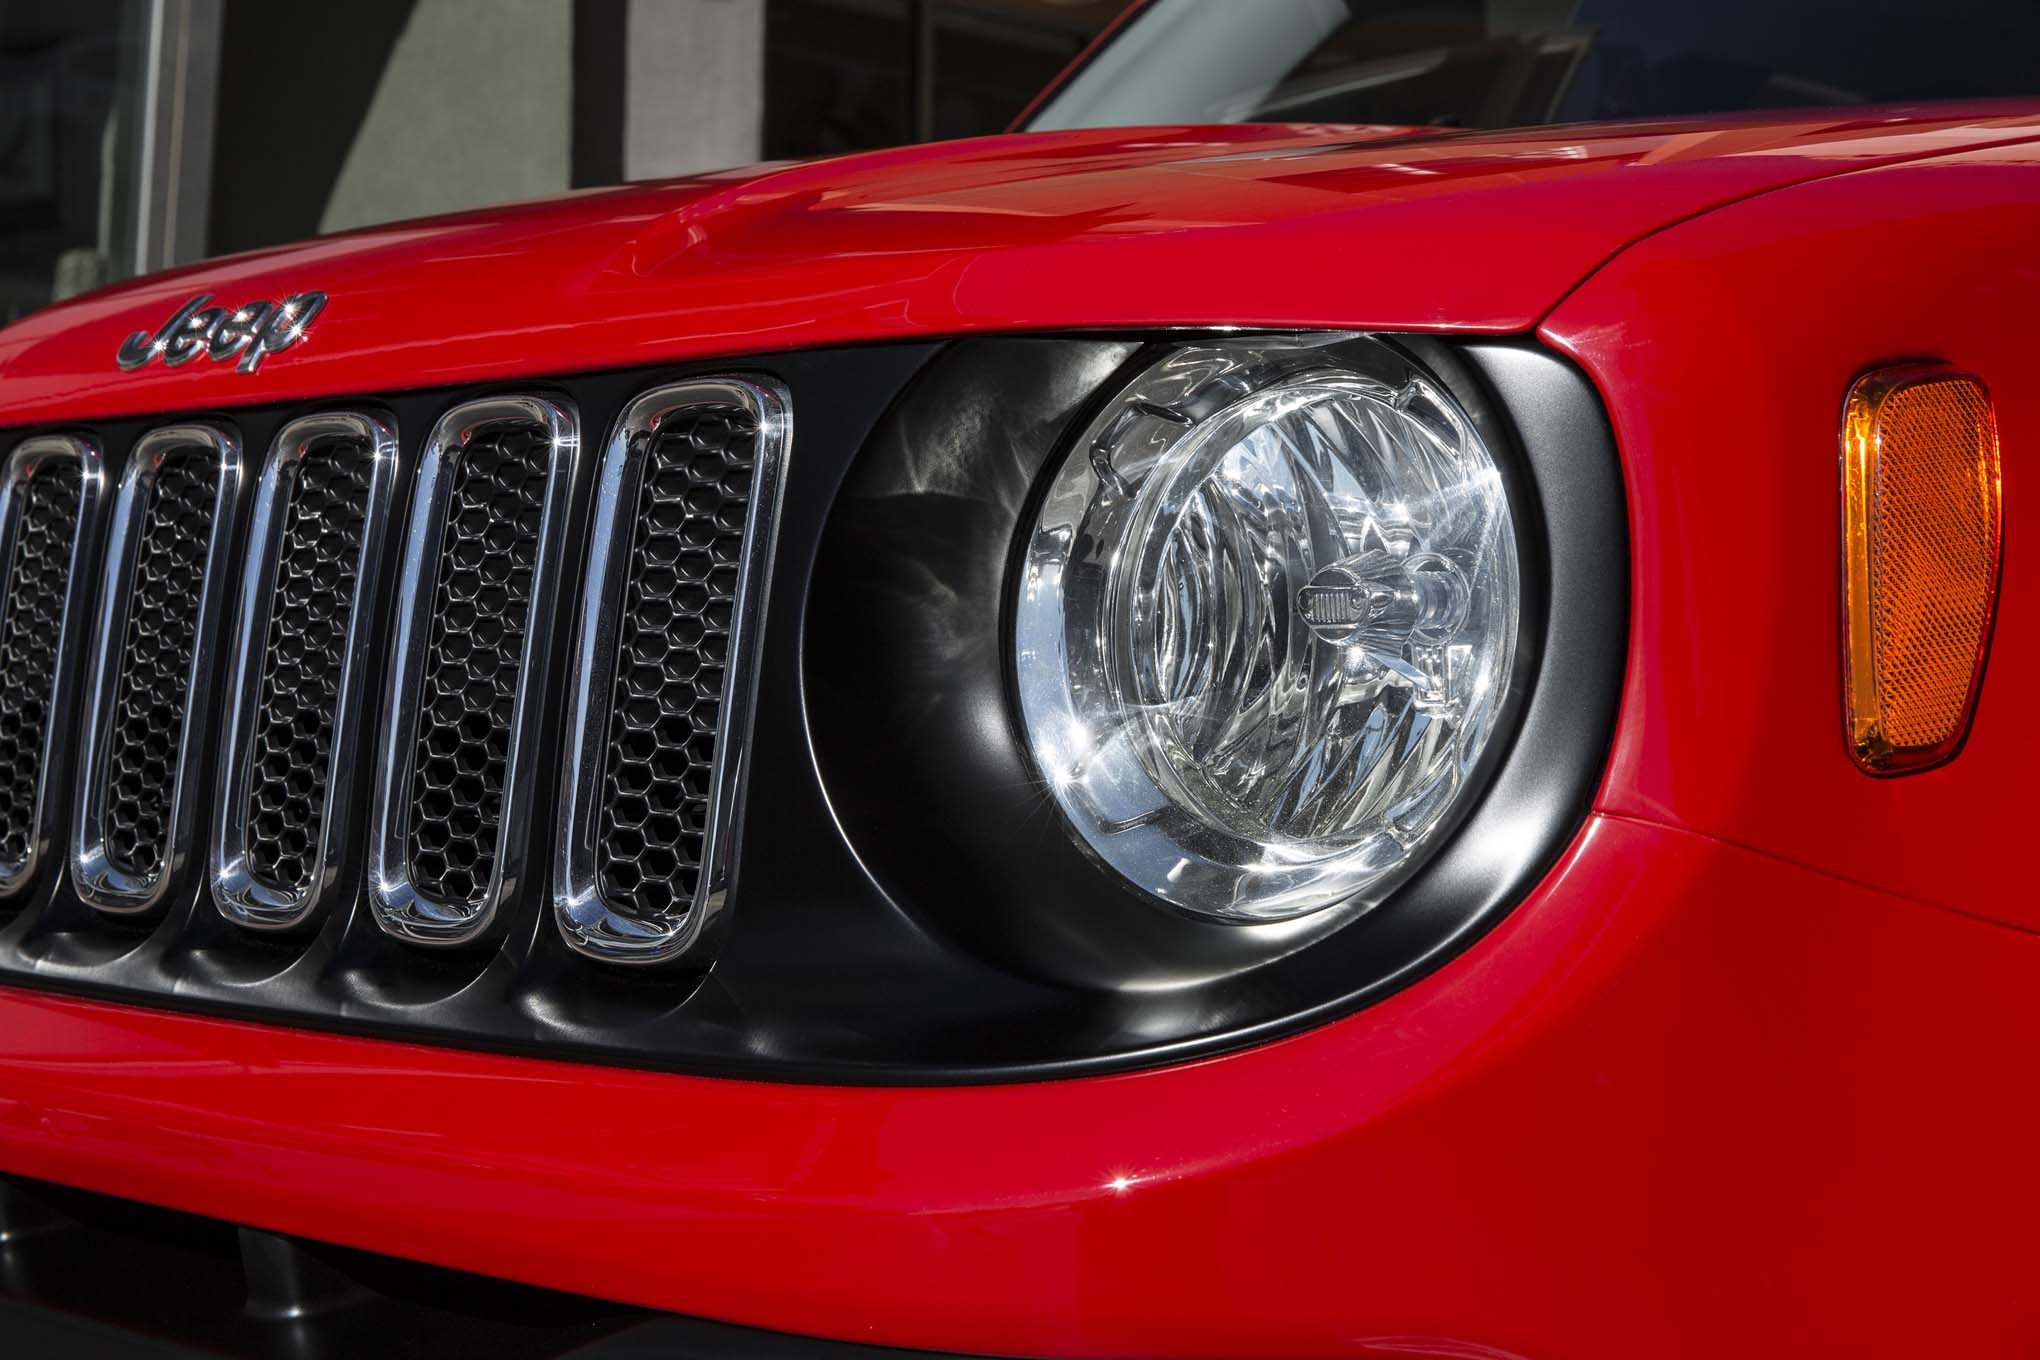 2015 Jeep Renegade Lattitude headlamp